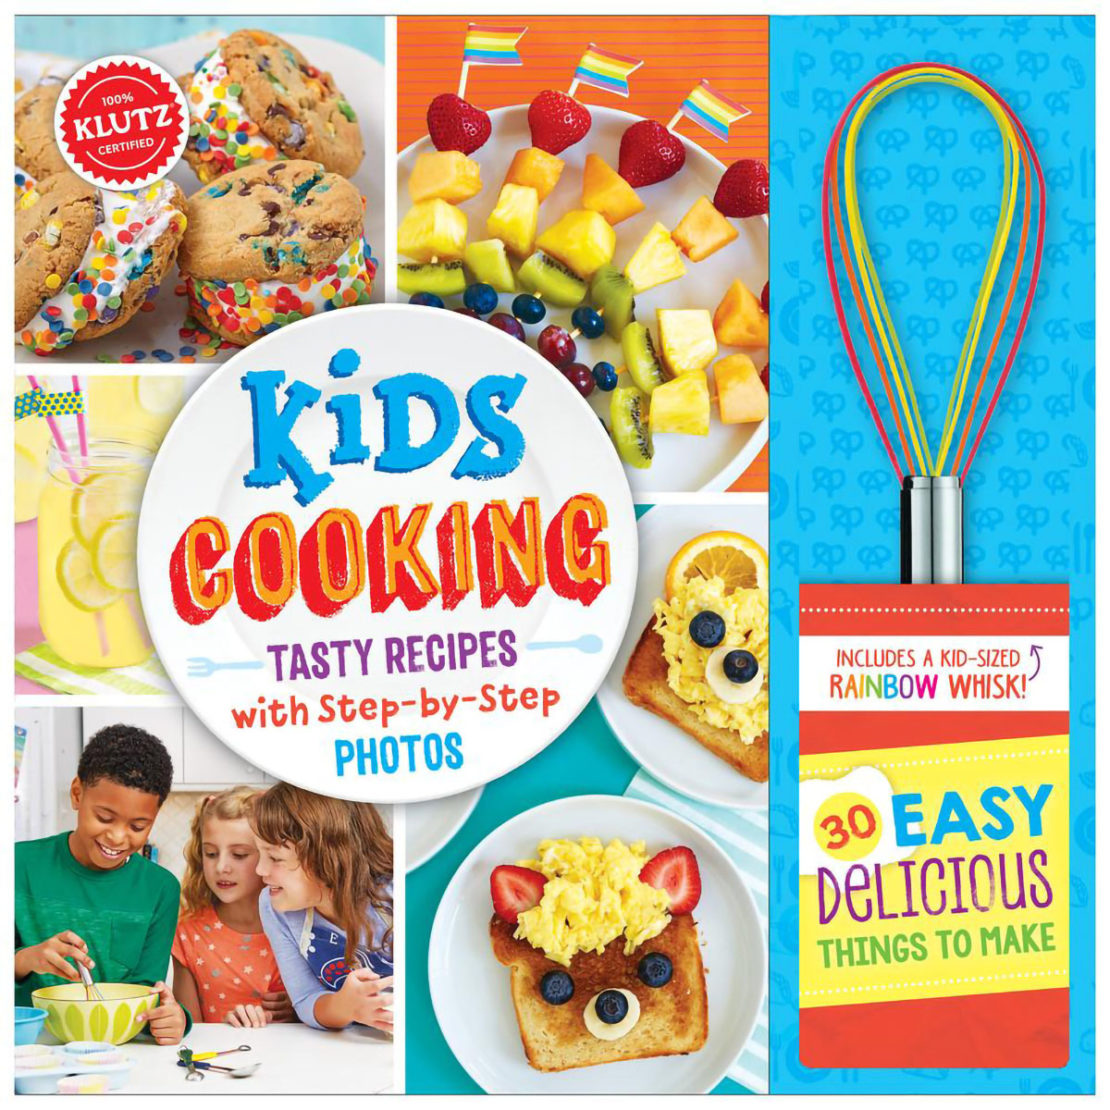 Kids Cooking Book with Whisk